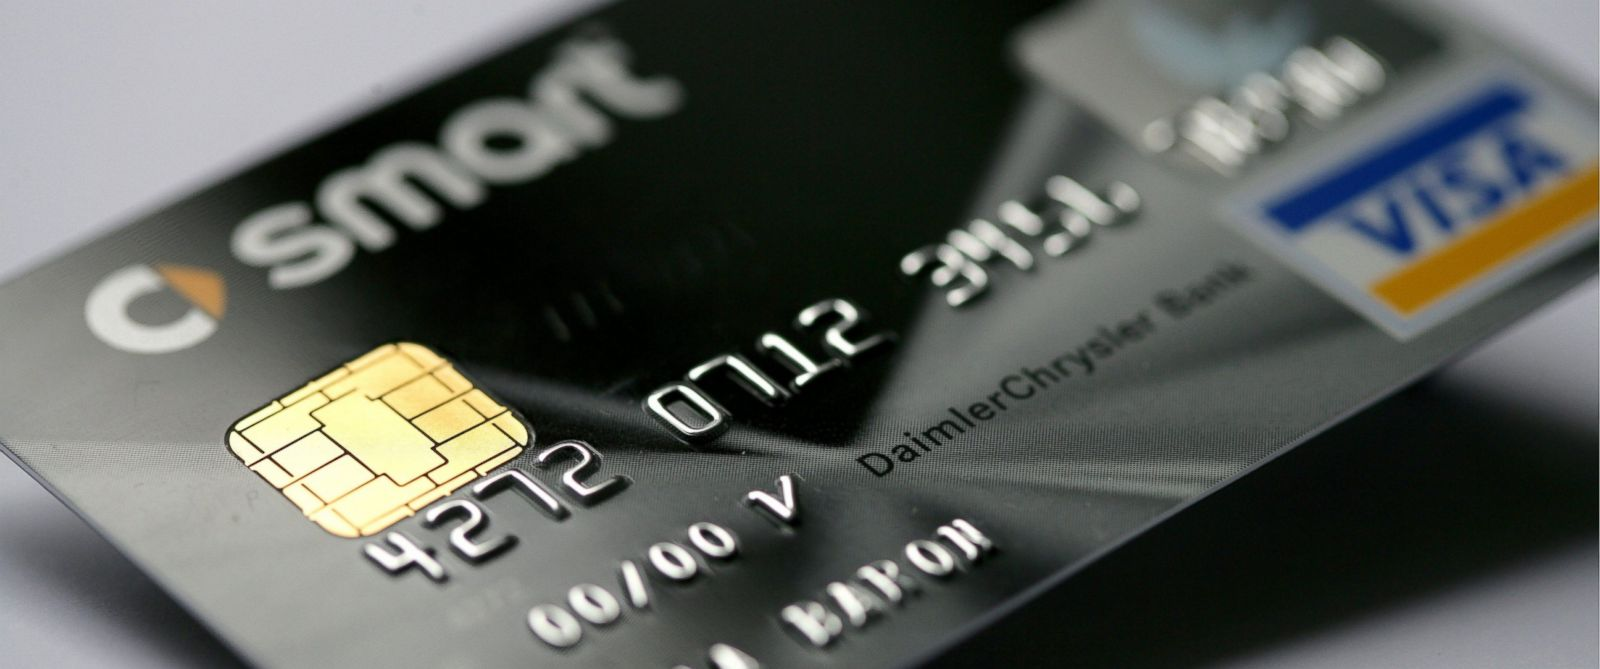 PHOTO: Credit card Smart Card Visa of the DaimlerChrysler Bank with EMV Chip, which substitutes the magnetic strip.